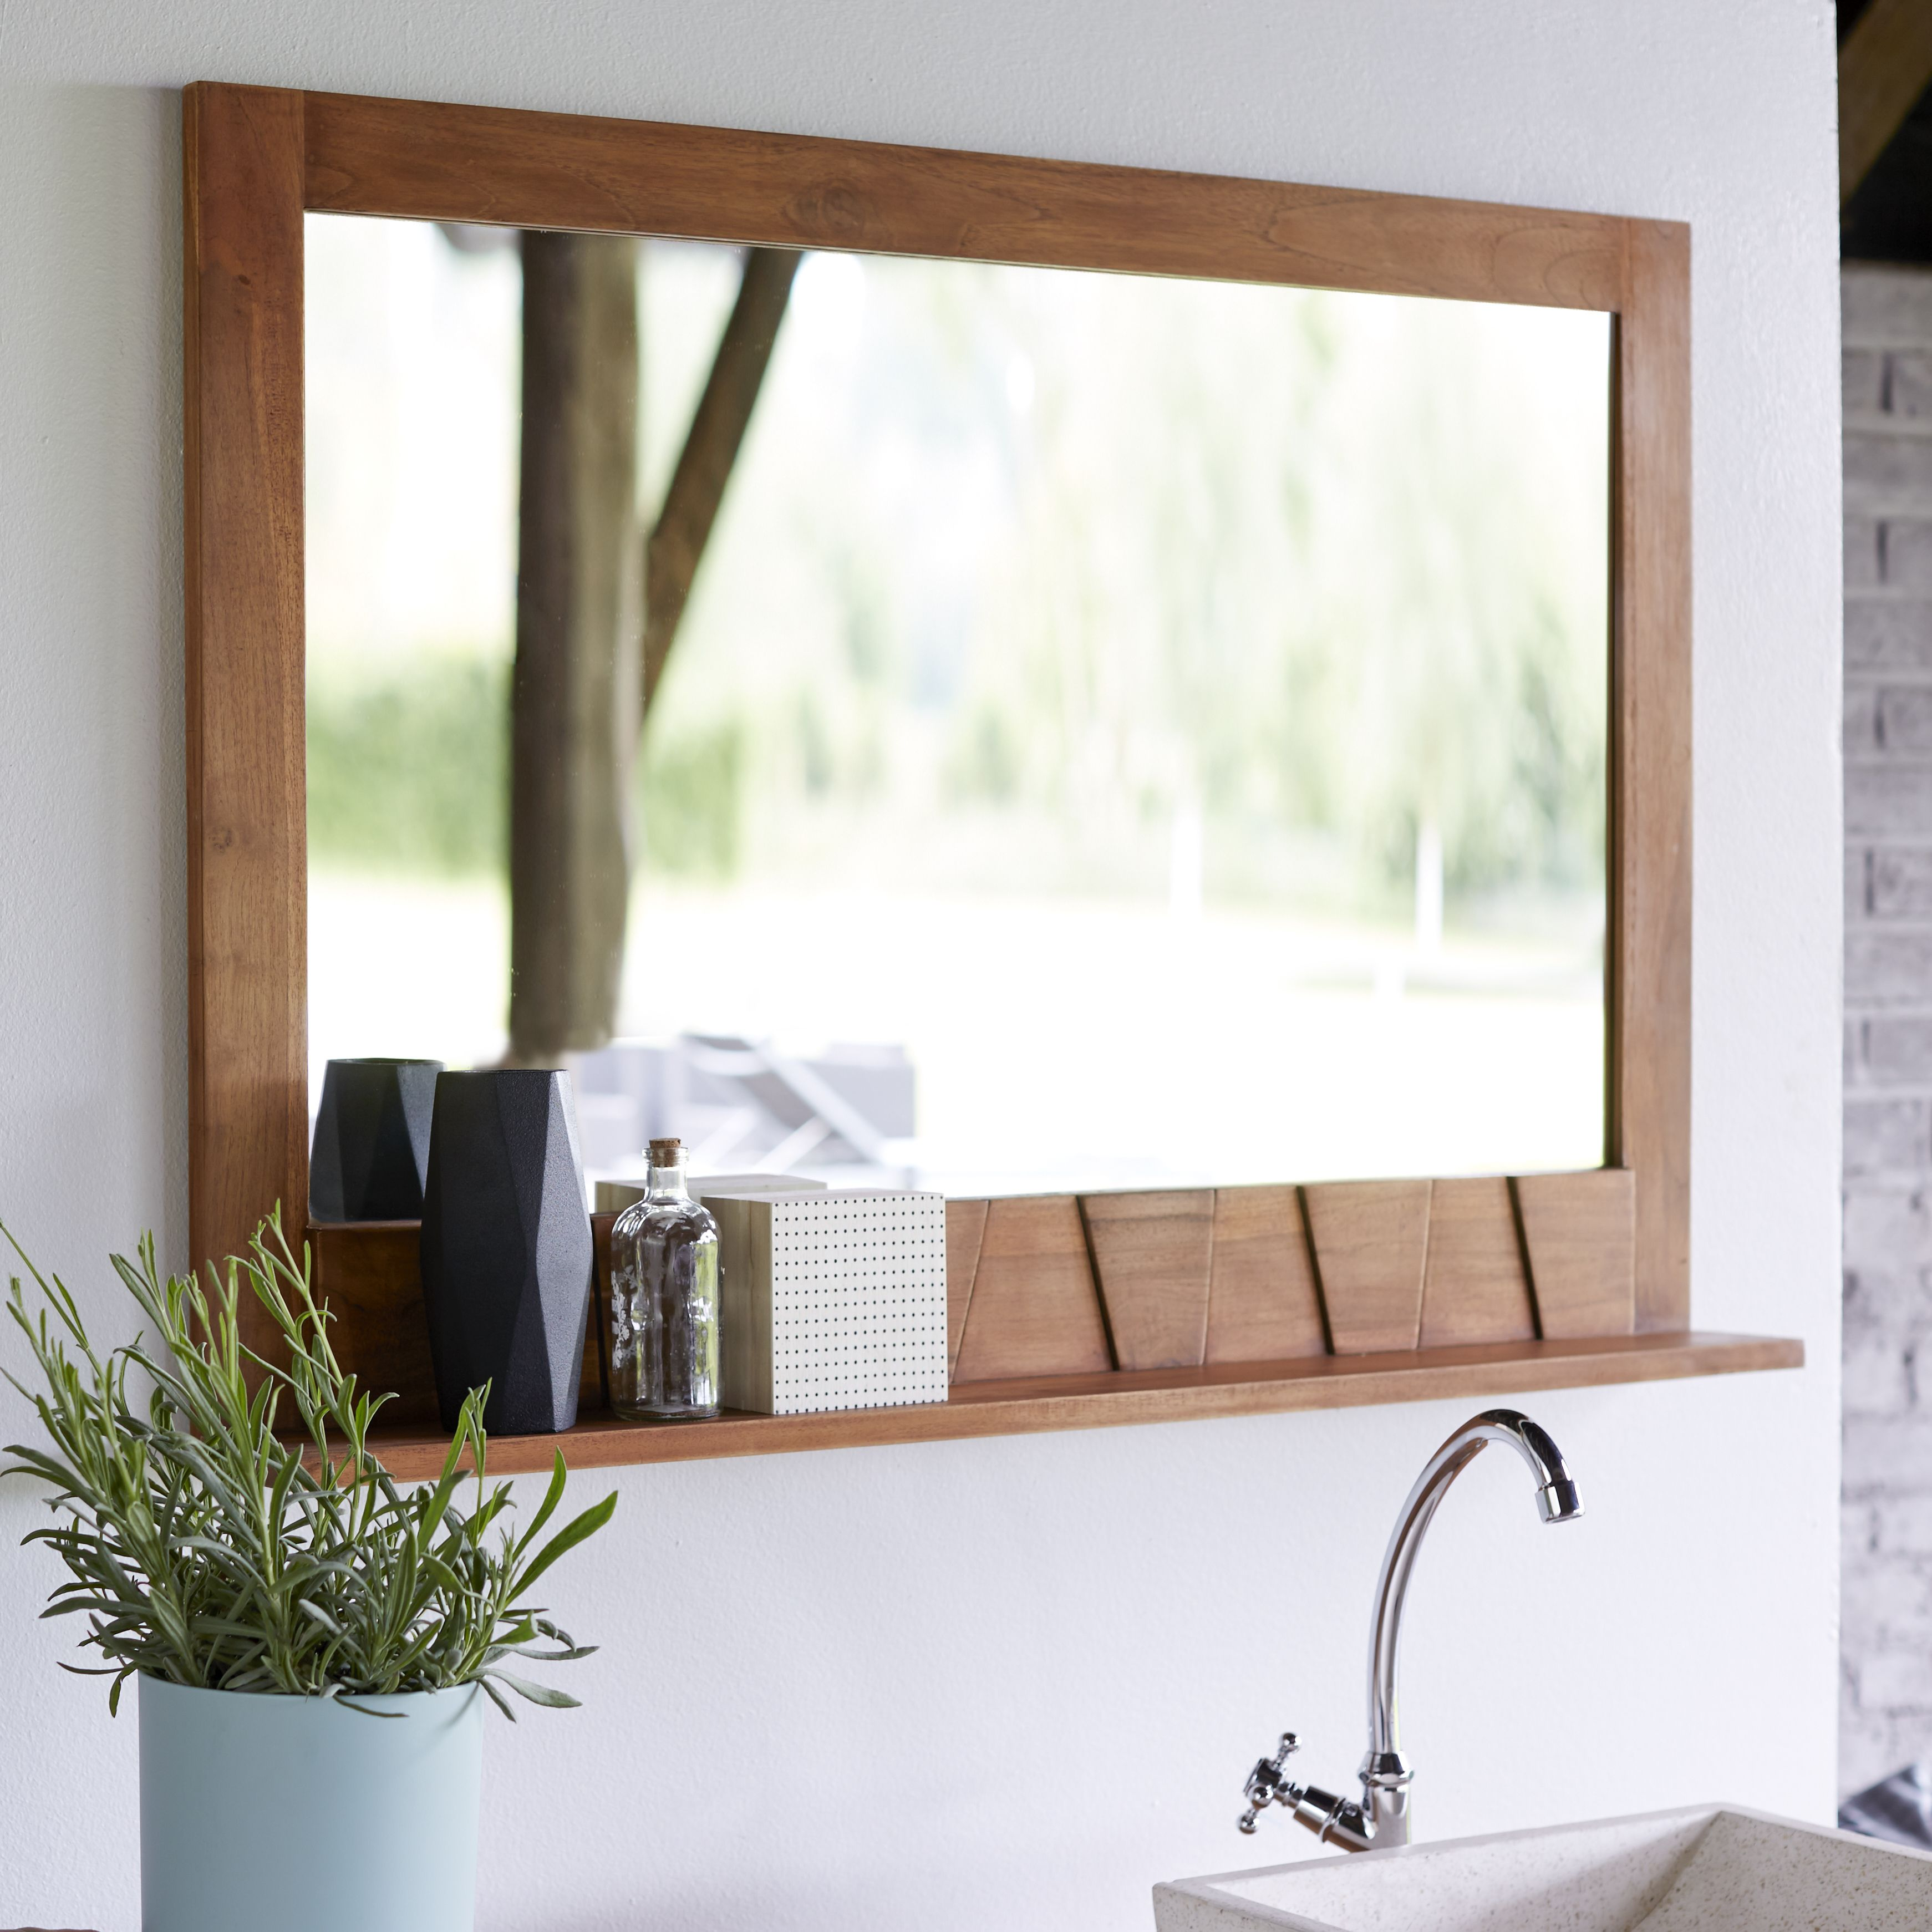 Take A Look At The Beautiful Bathroom Wash Unit And Column